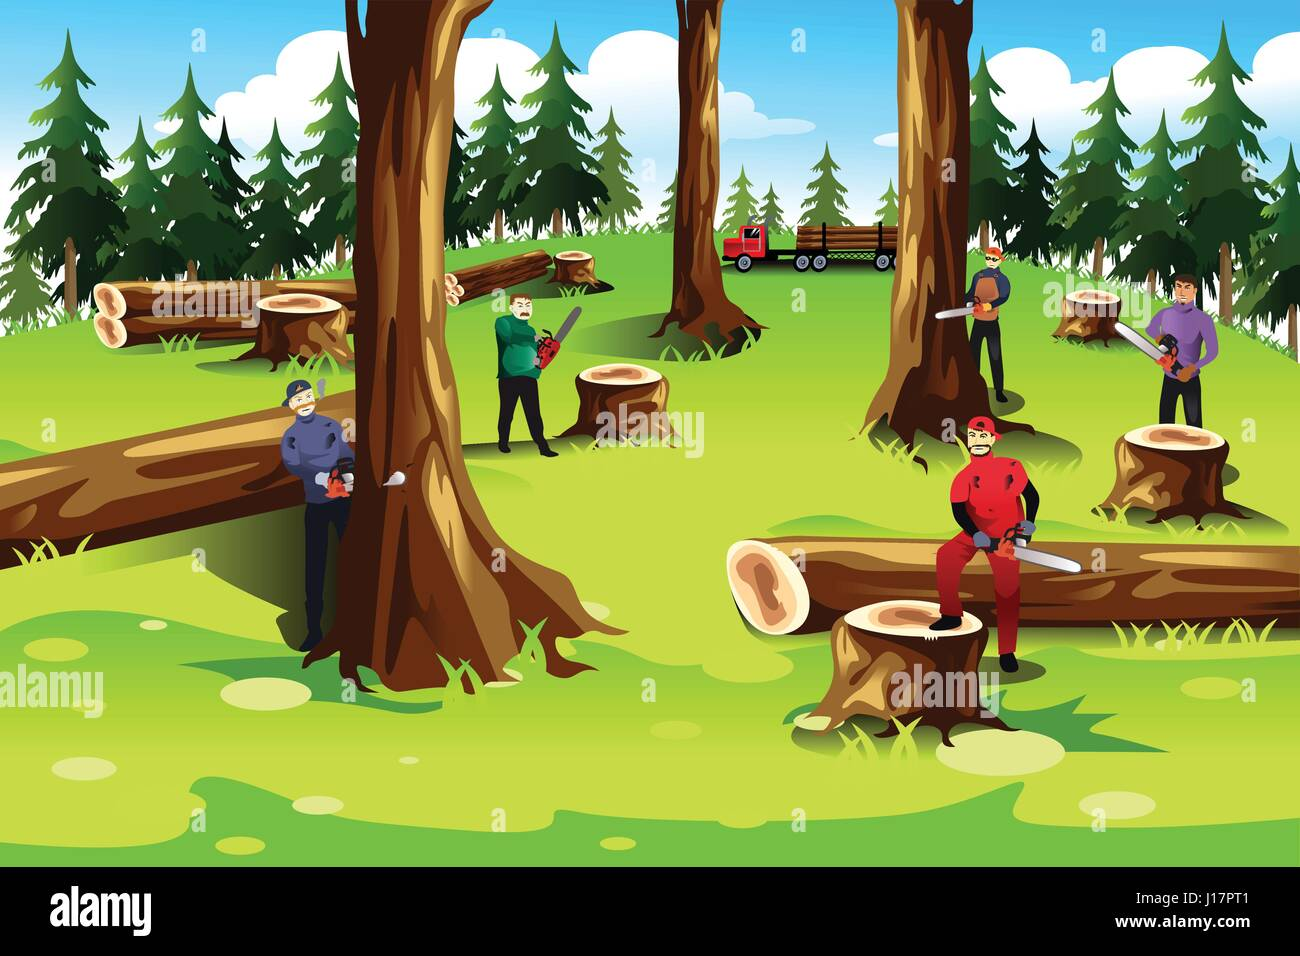 a vector illustration of people cutting down and exploiting trees